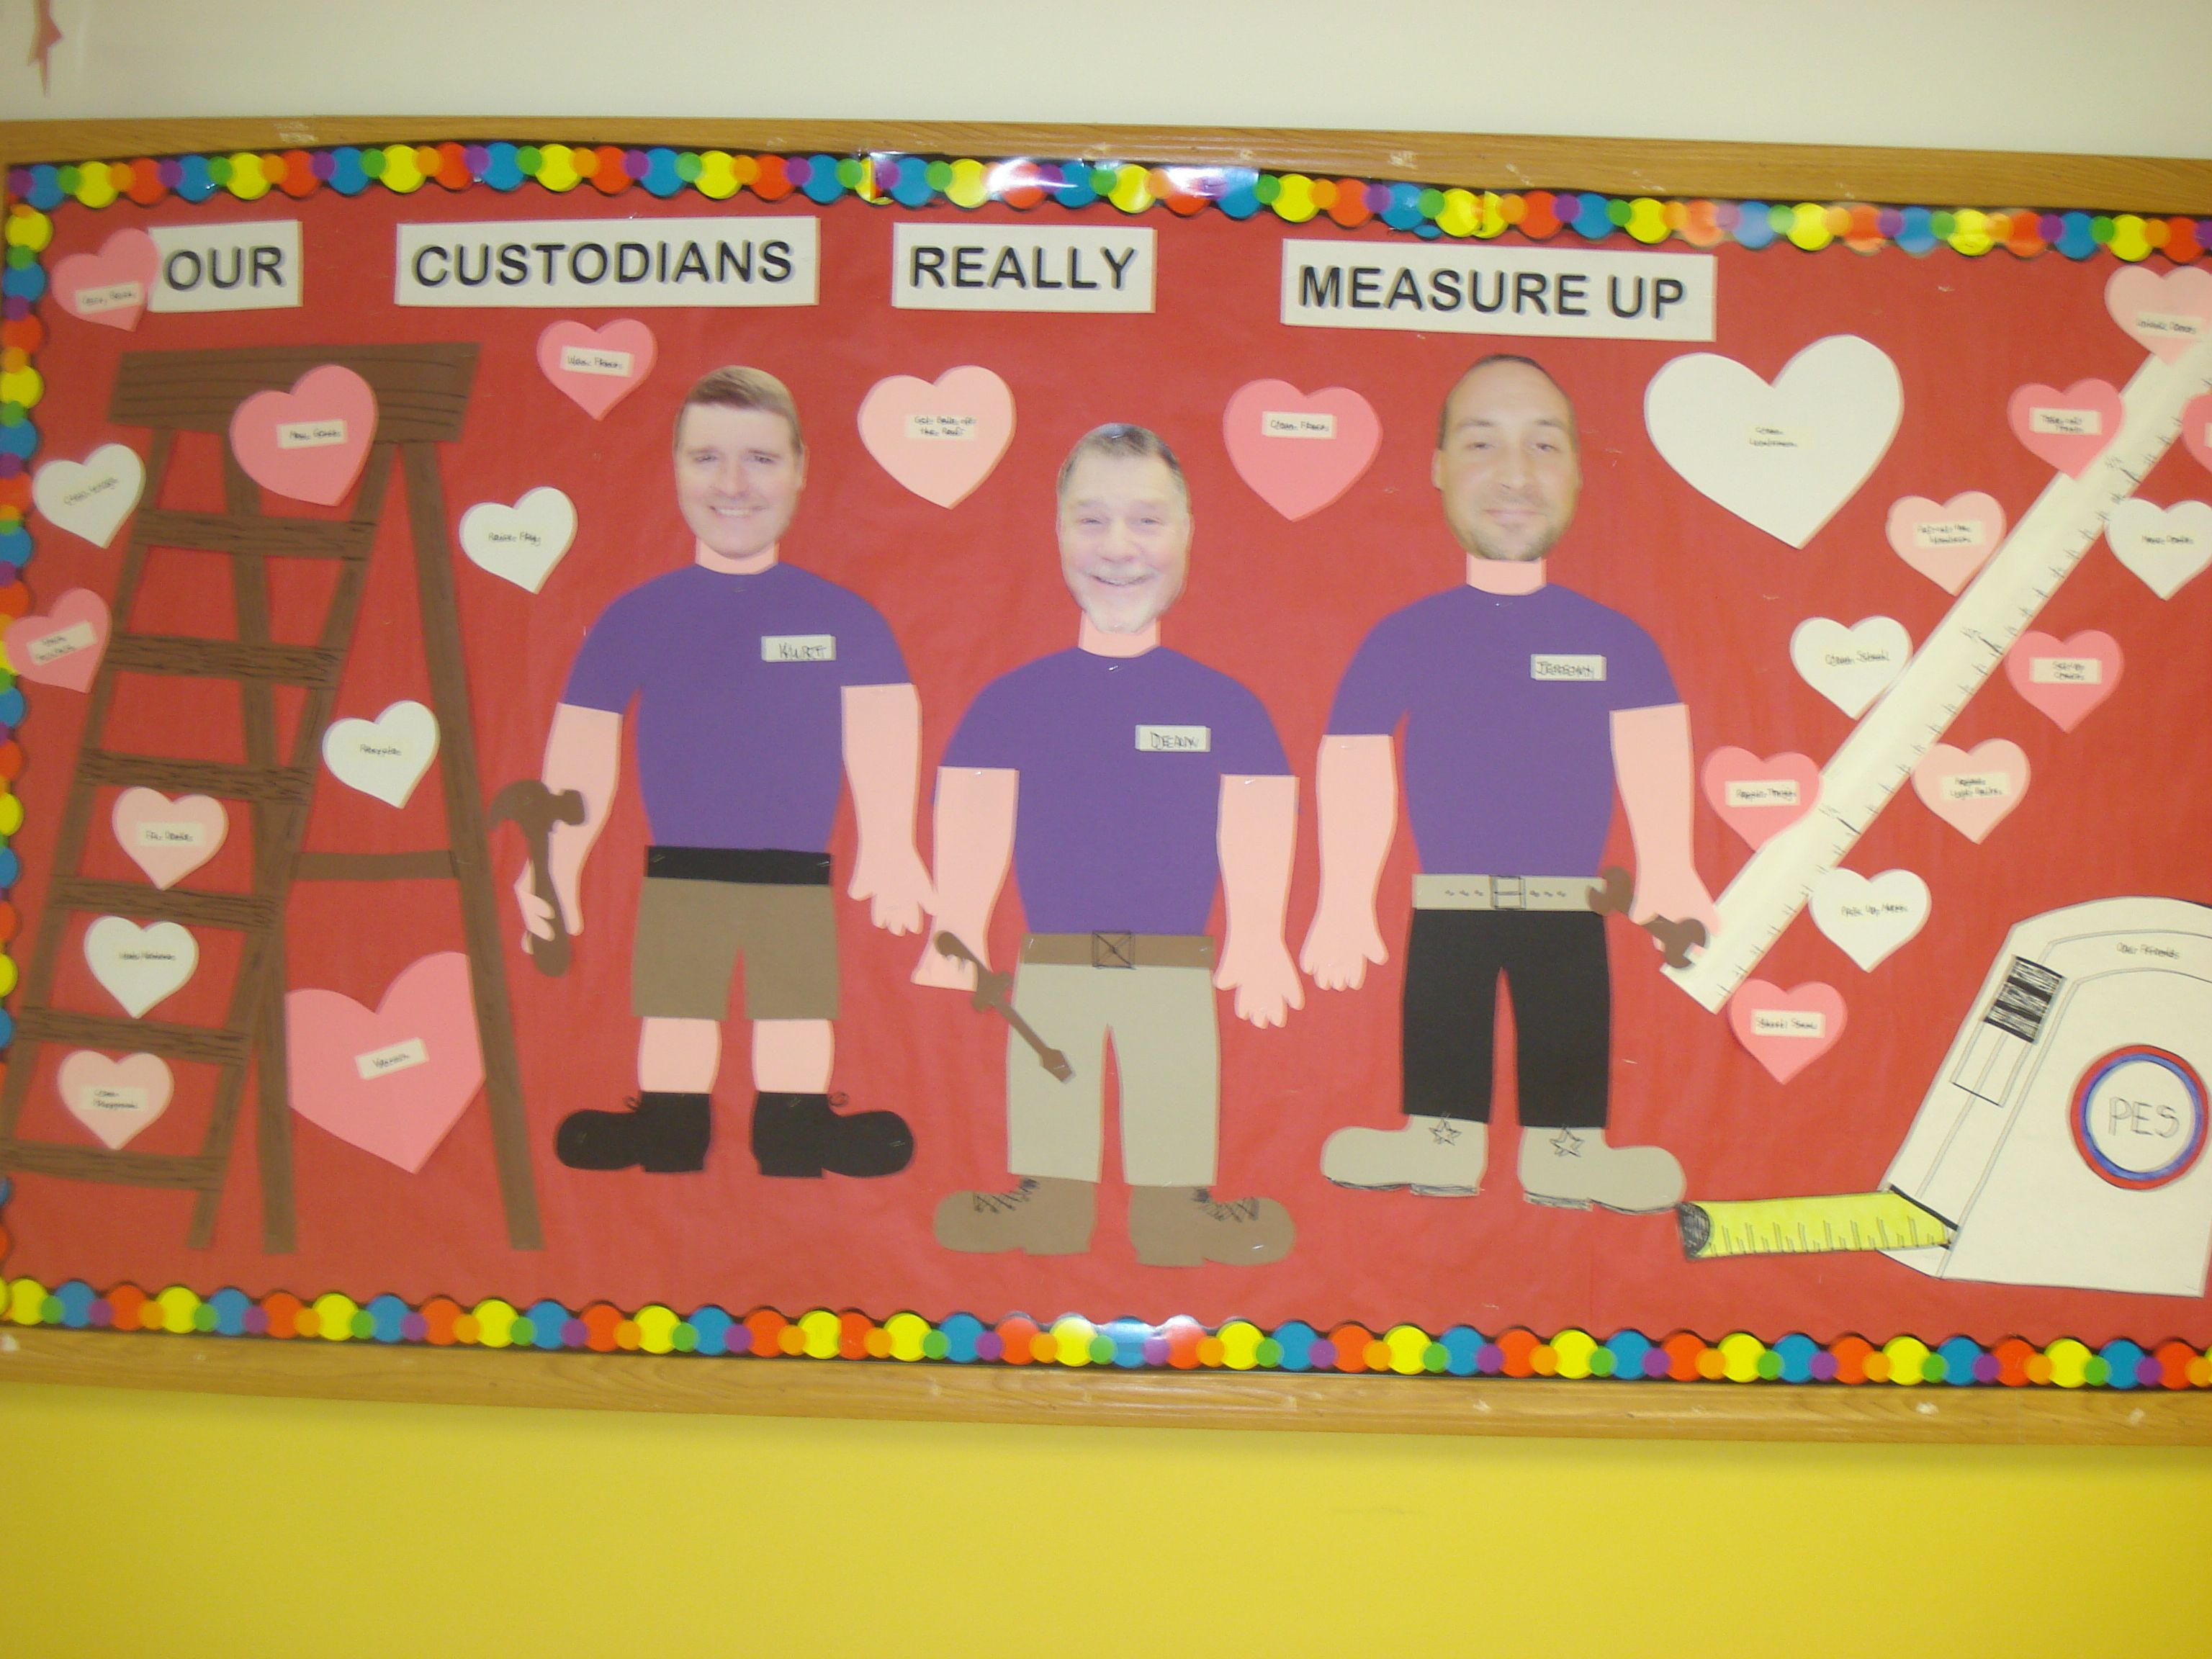 Appreciation To Our Custodians: All The Things They Do Are On The Hearts  Another Word For Janitor